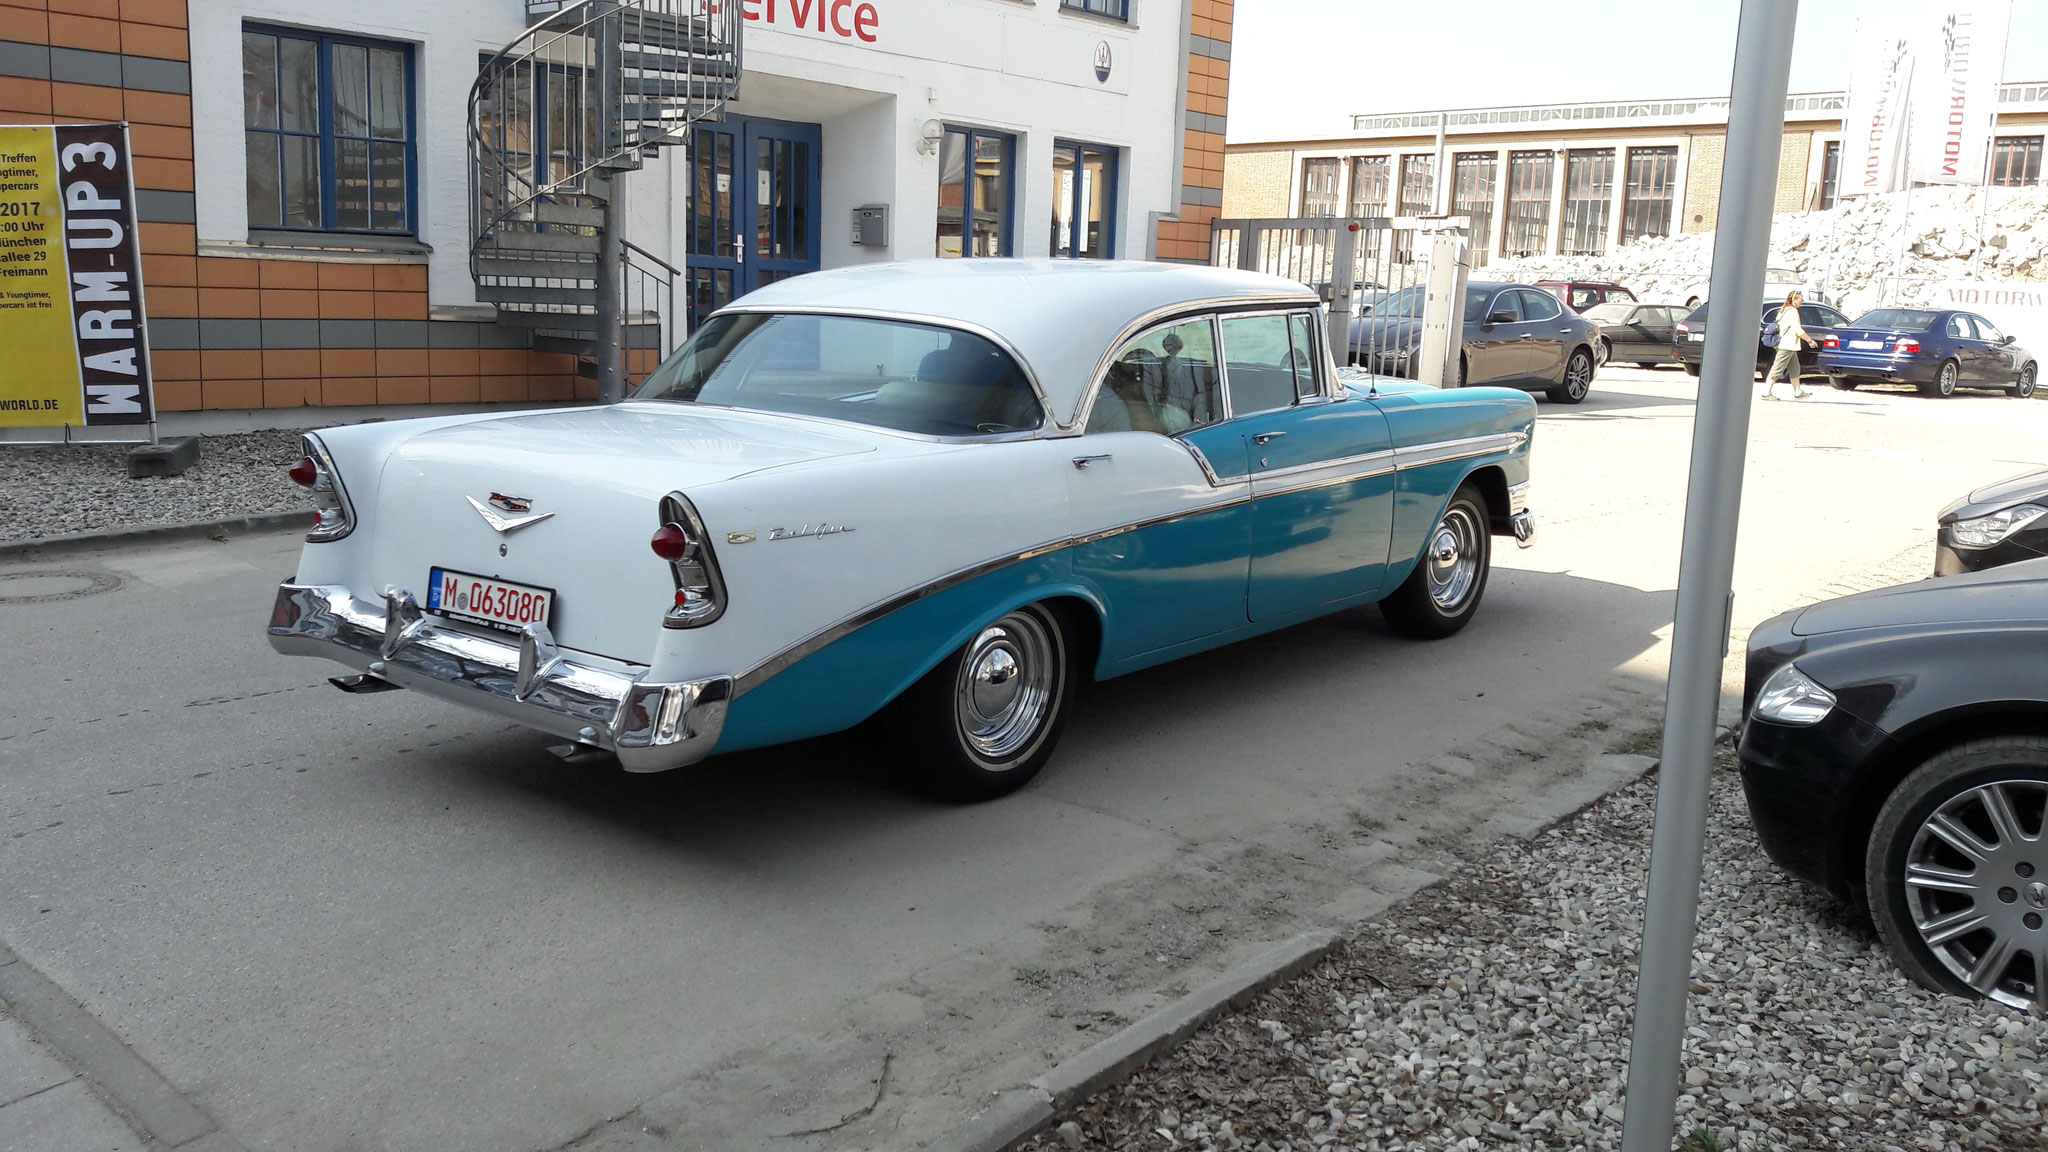 Chevrolet Bel Air - M-063080